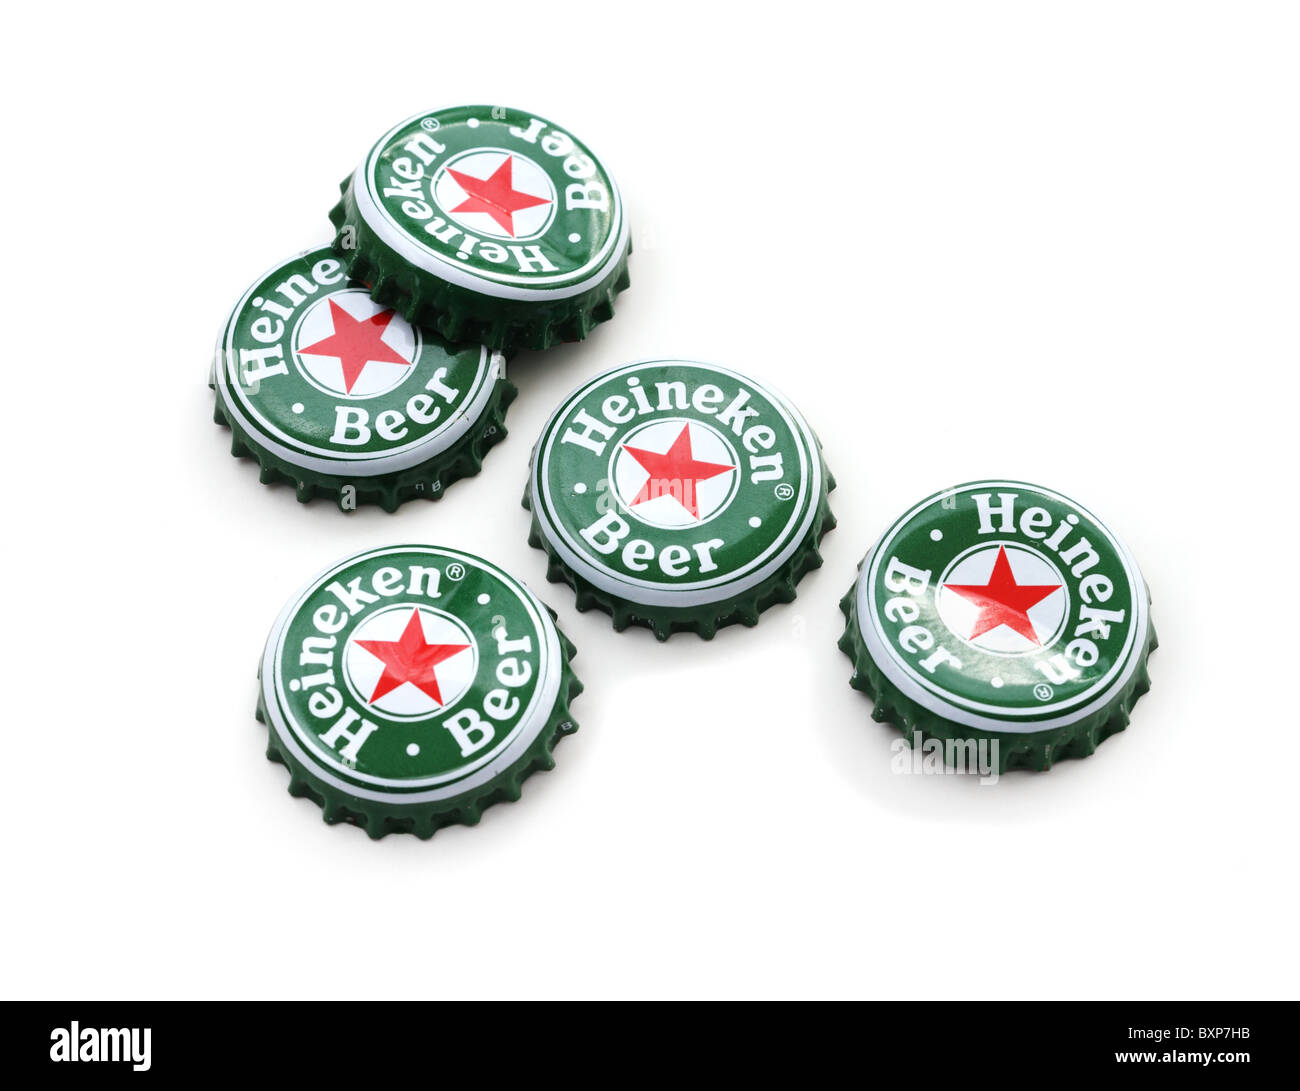 heineken beer bottle caps on white background stock photo